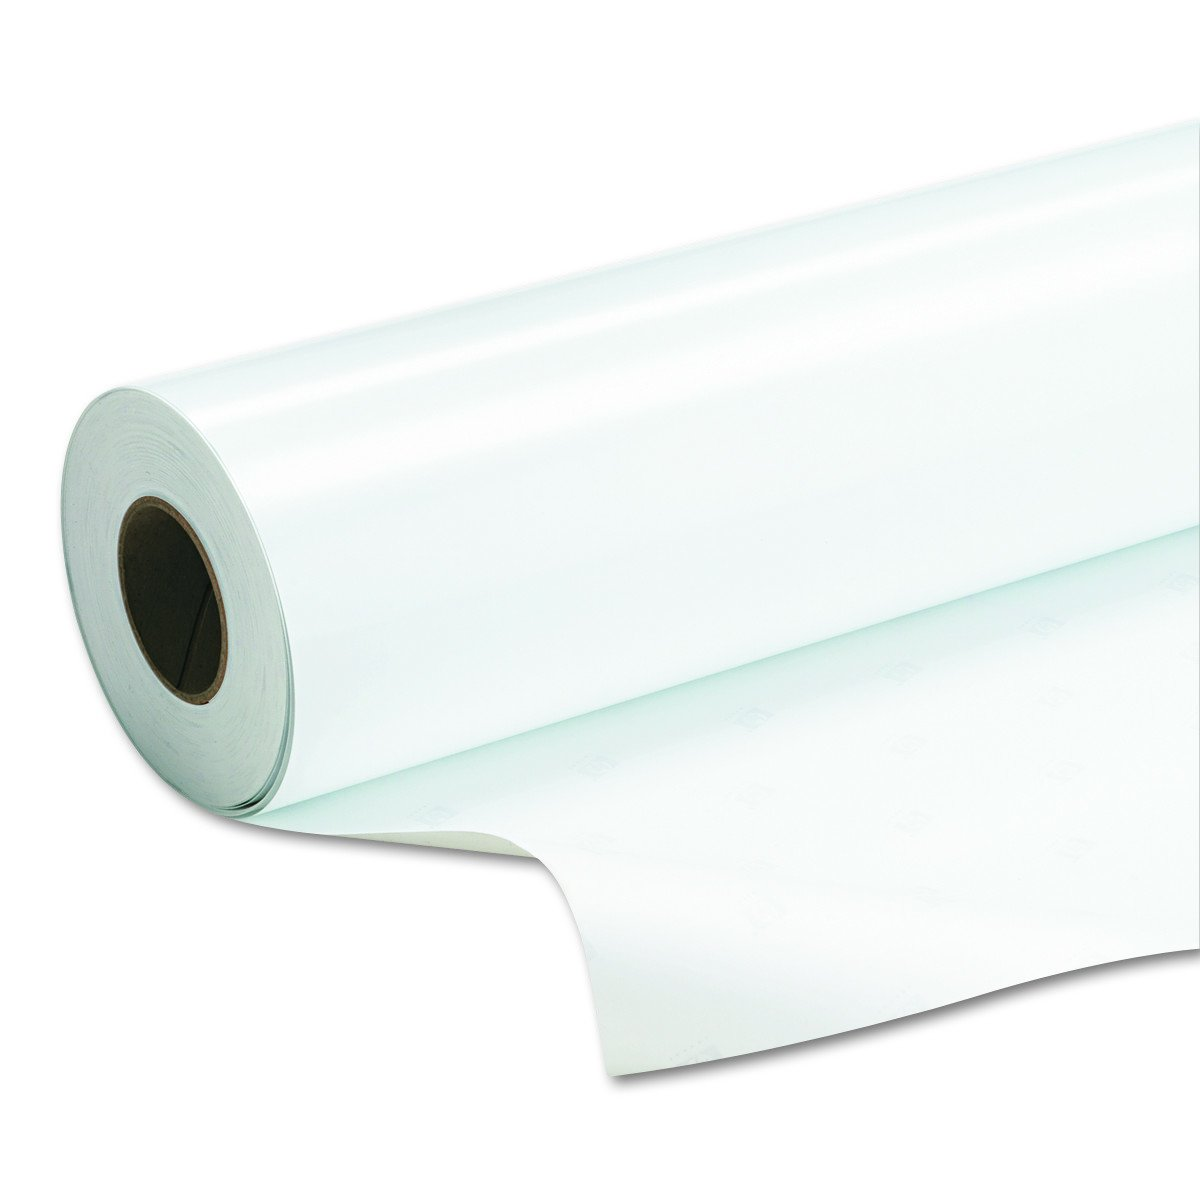 HP Premium Instant-Dry Satin Photo Paper (60 Inches x 100 Feet Roll) by HEWLETT PACKARD (Image #1)